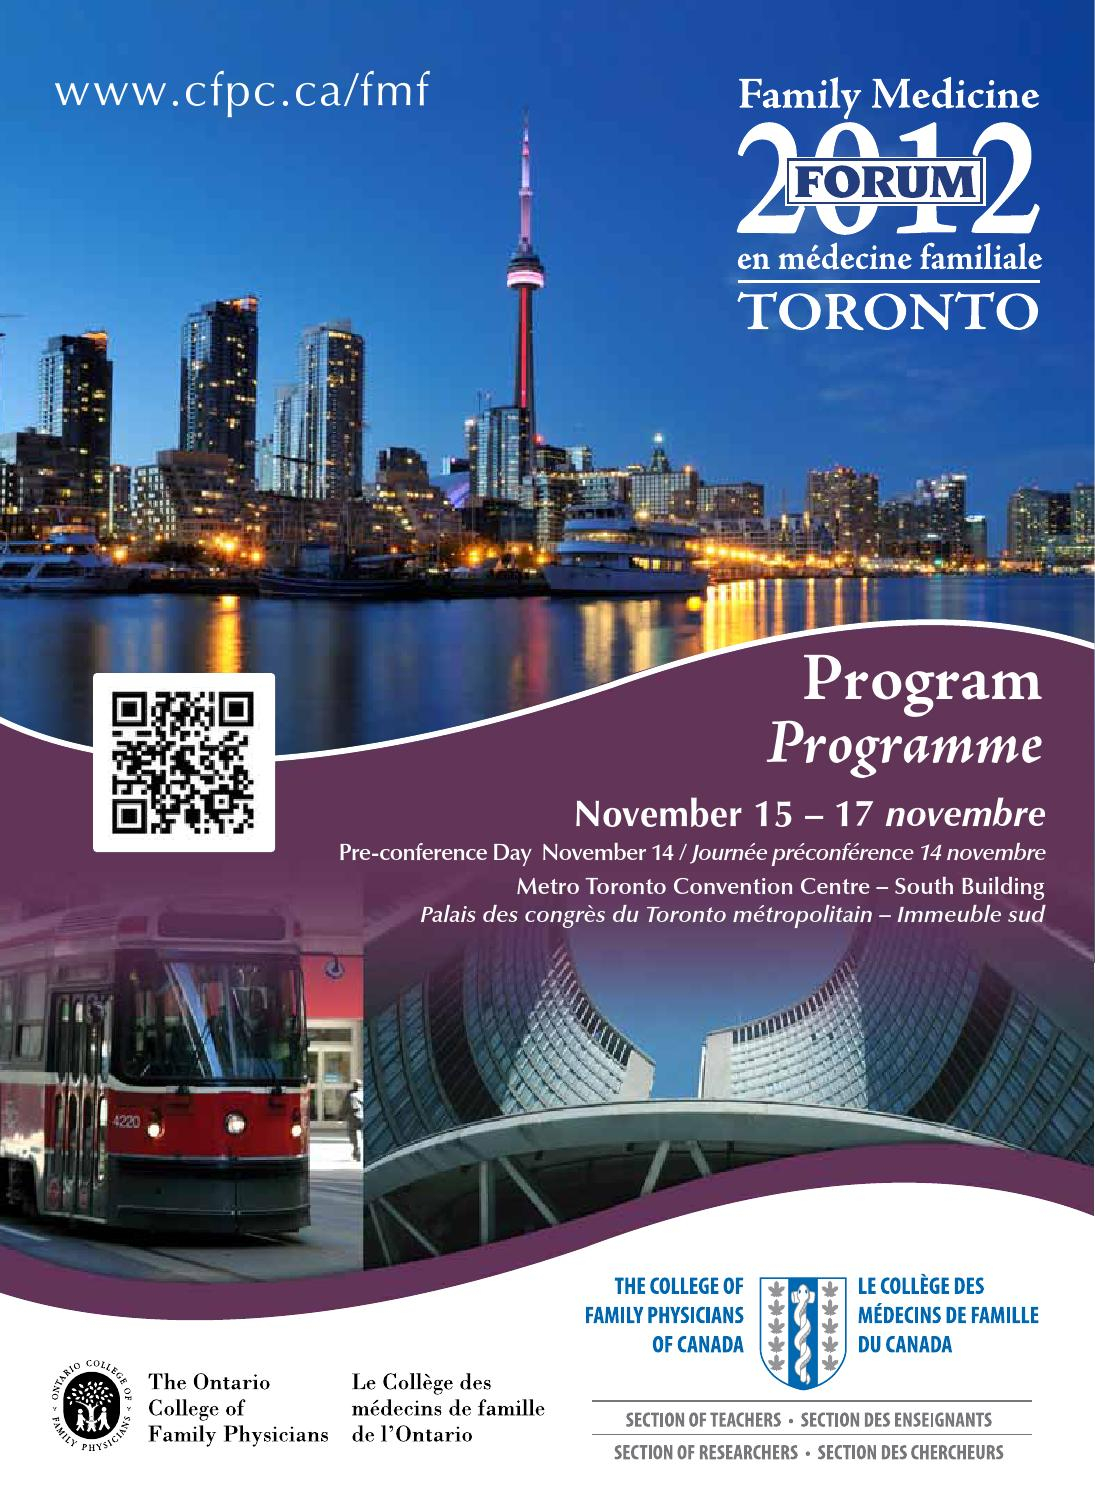 carte des médecins spécialisés en fibromyalgie Family Medicine Forum 2012 Program by Family Medicine Forum   issuu